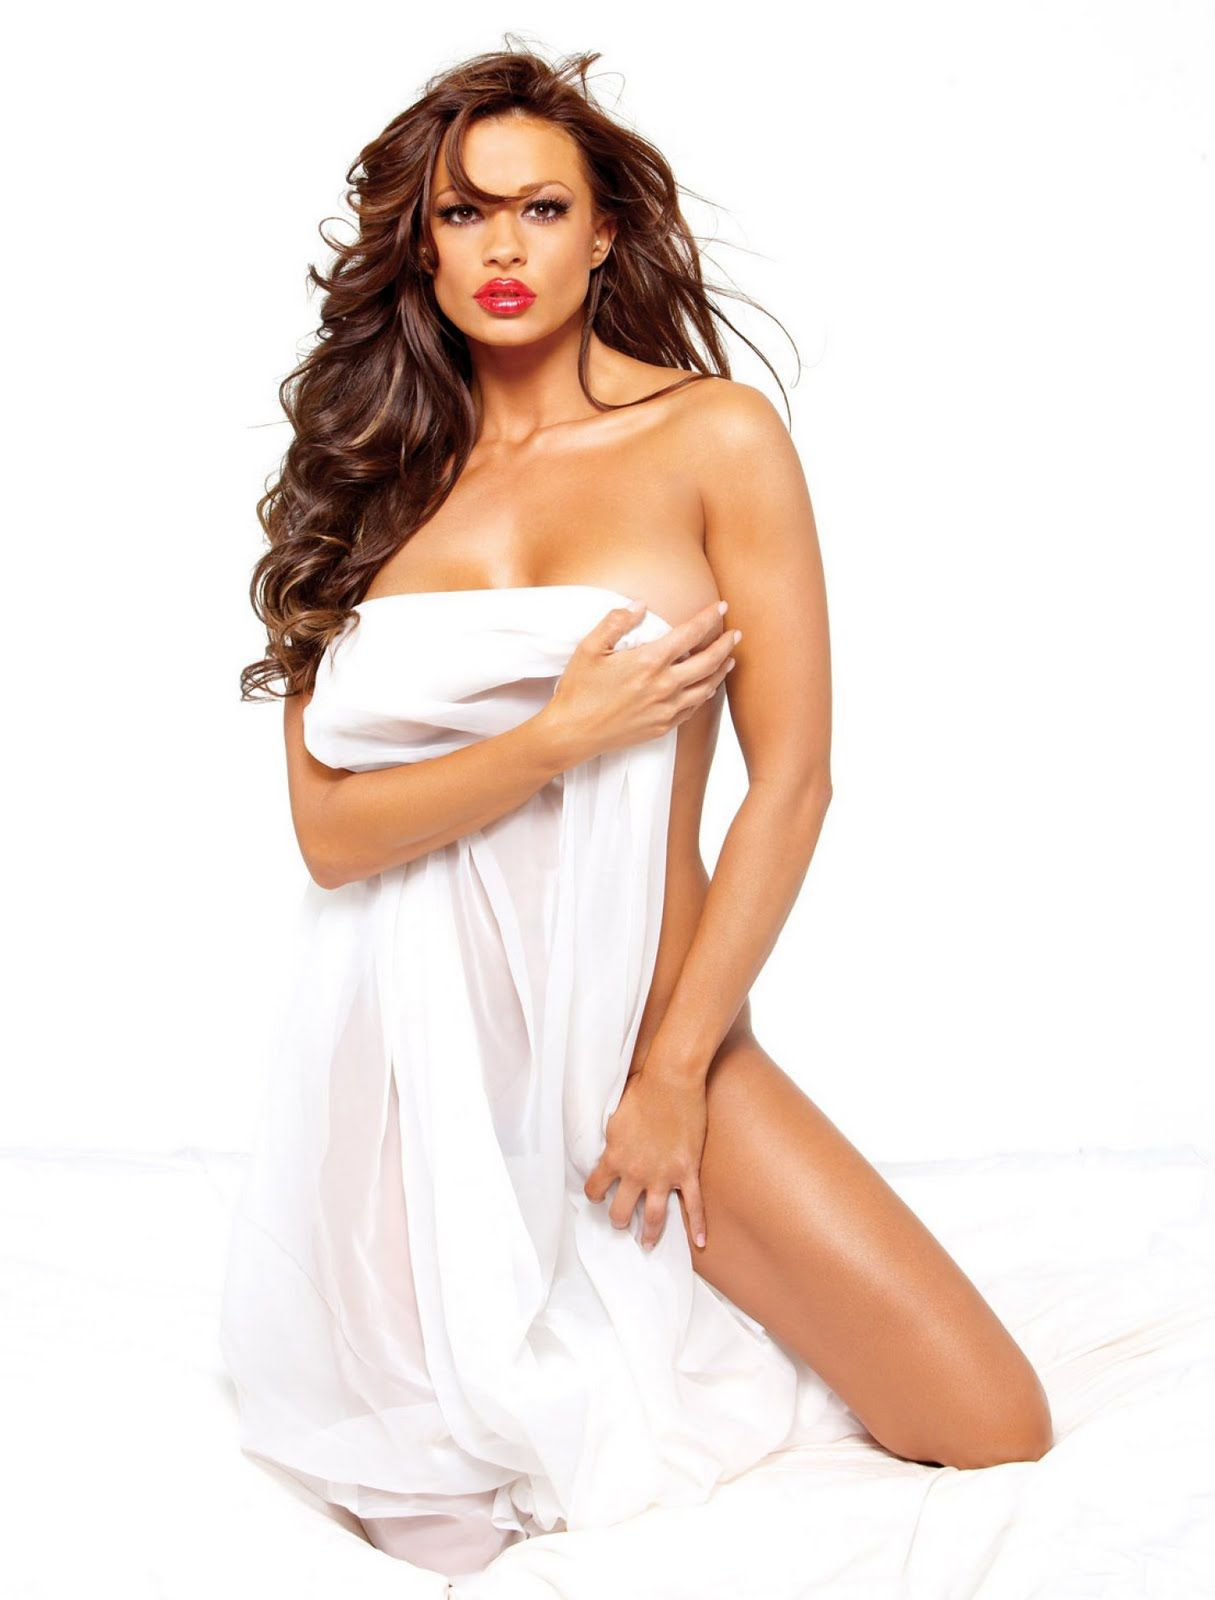 Wwe Candice Michelle Porn Minimalist 22 best candice michelle images on pinterest | sexy, wwe tna and